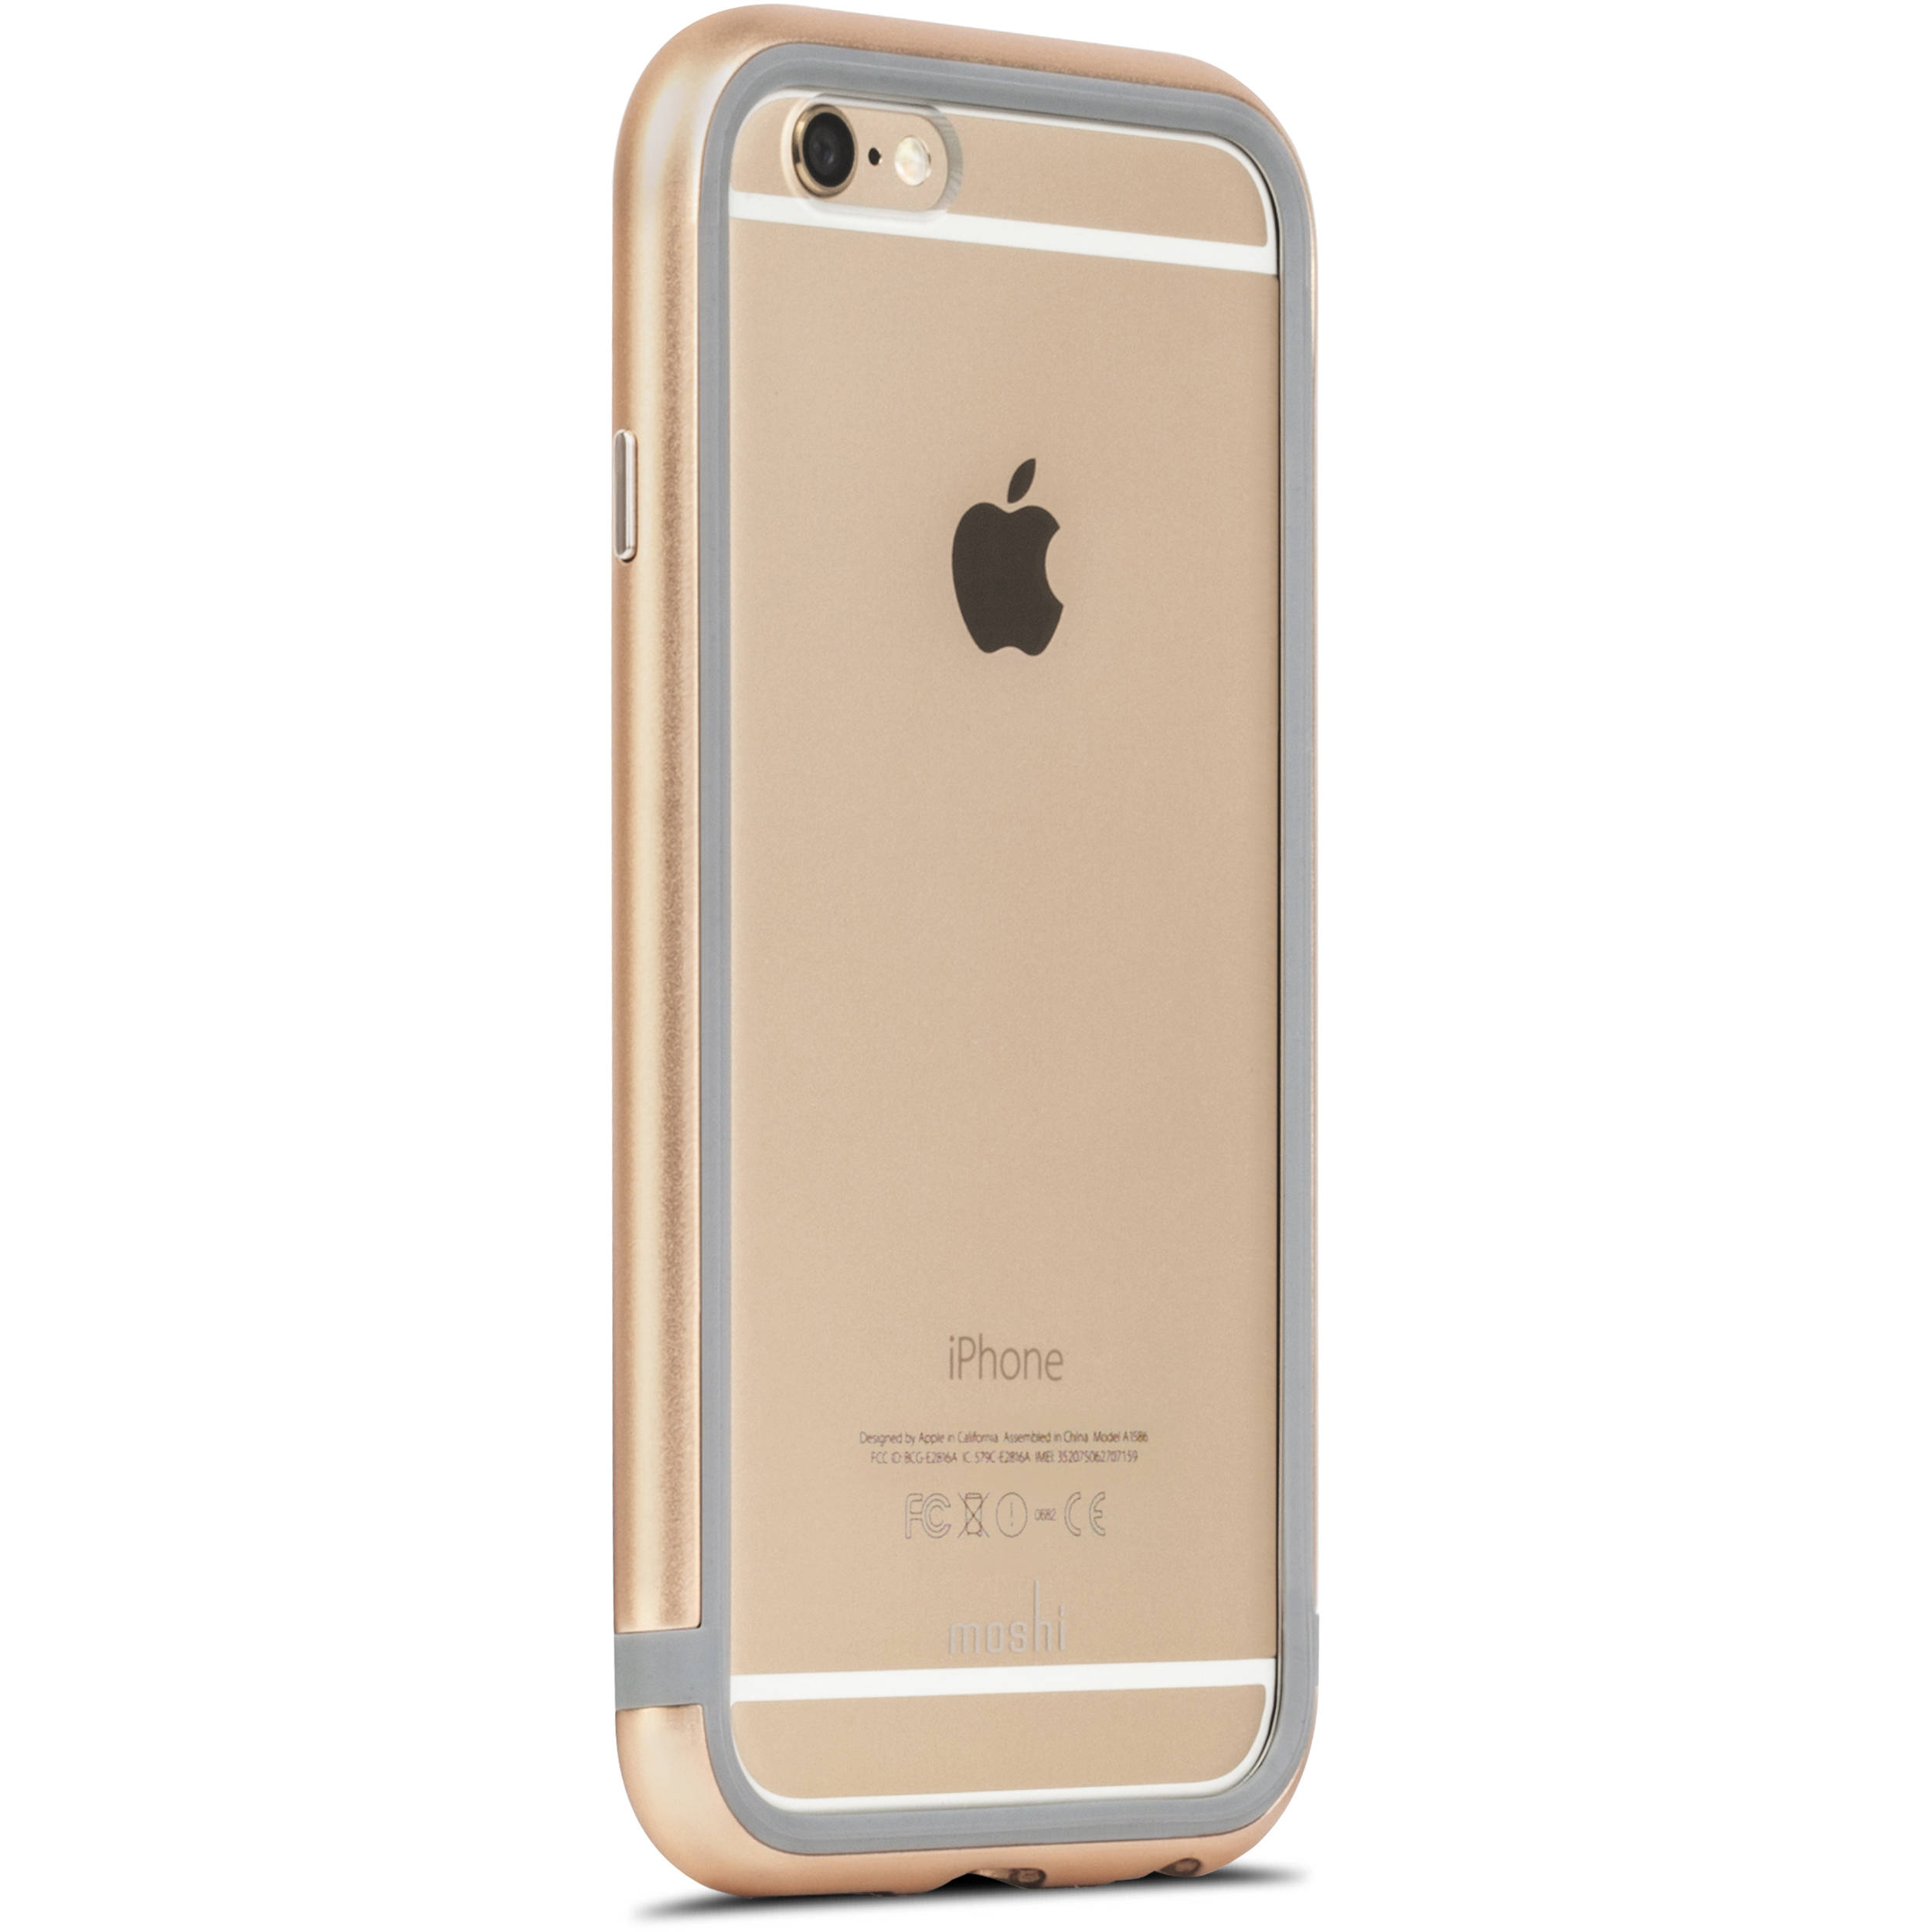 Case Design nike cell phone cases : Moshi iGlaze Luxe Metal Bumper Case for iPhone 6/6s (Satin Gold)